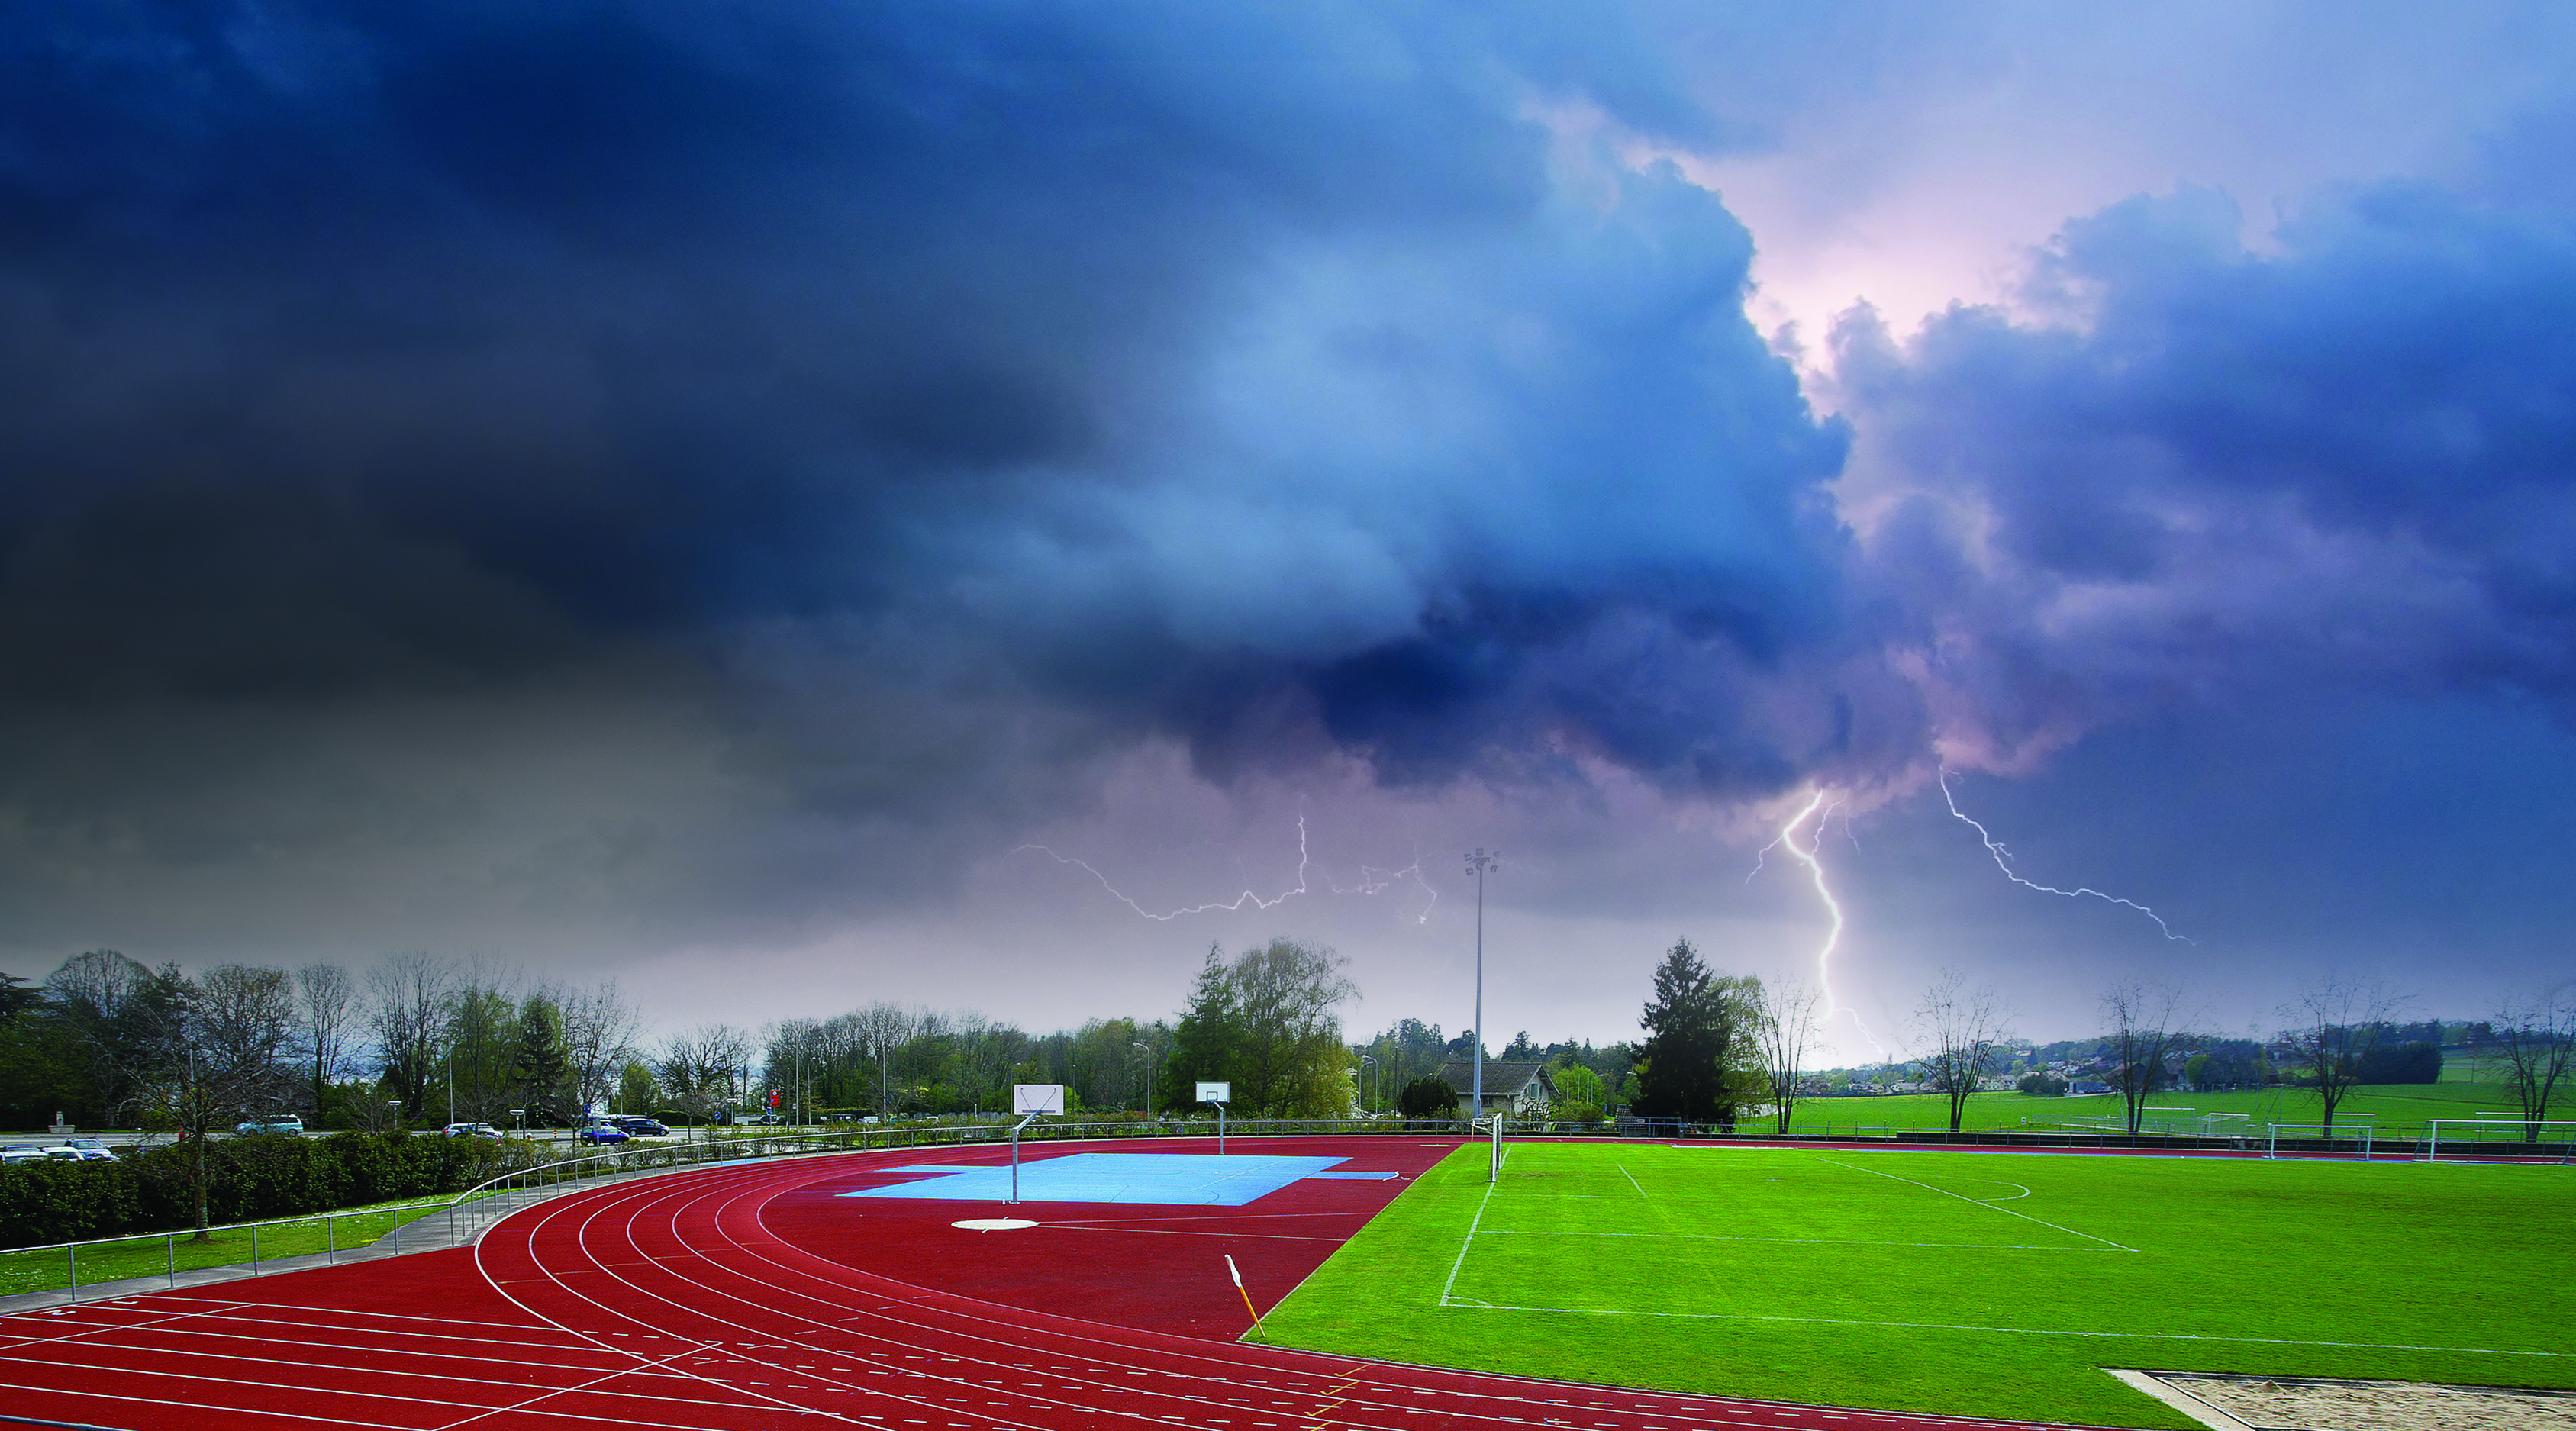 Campus Events and Severe Weather: Who Makes the Call?